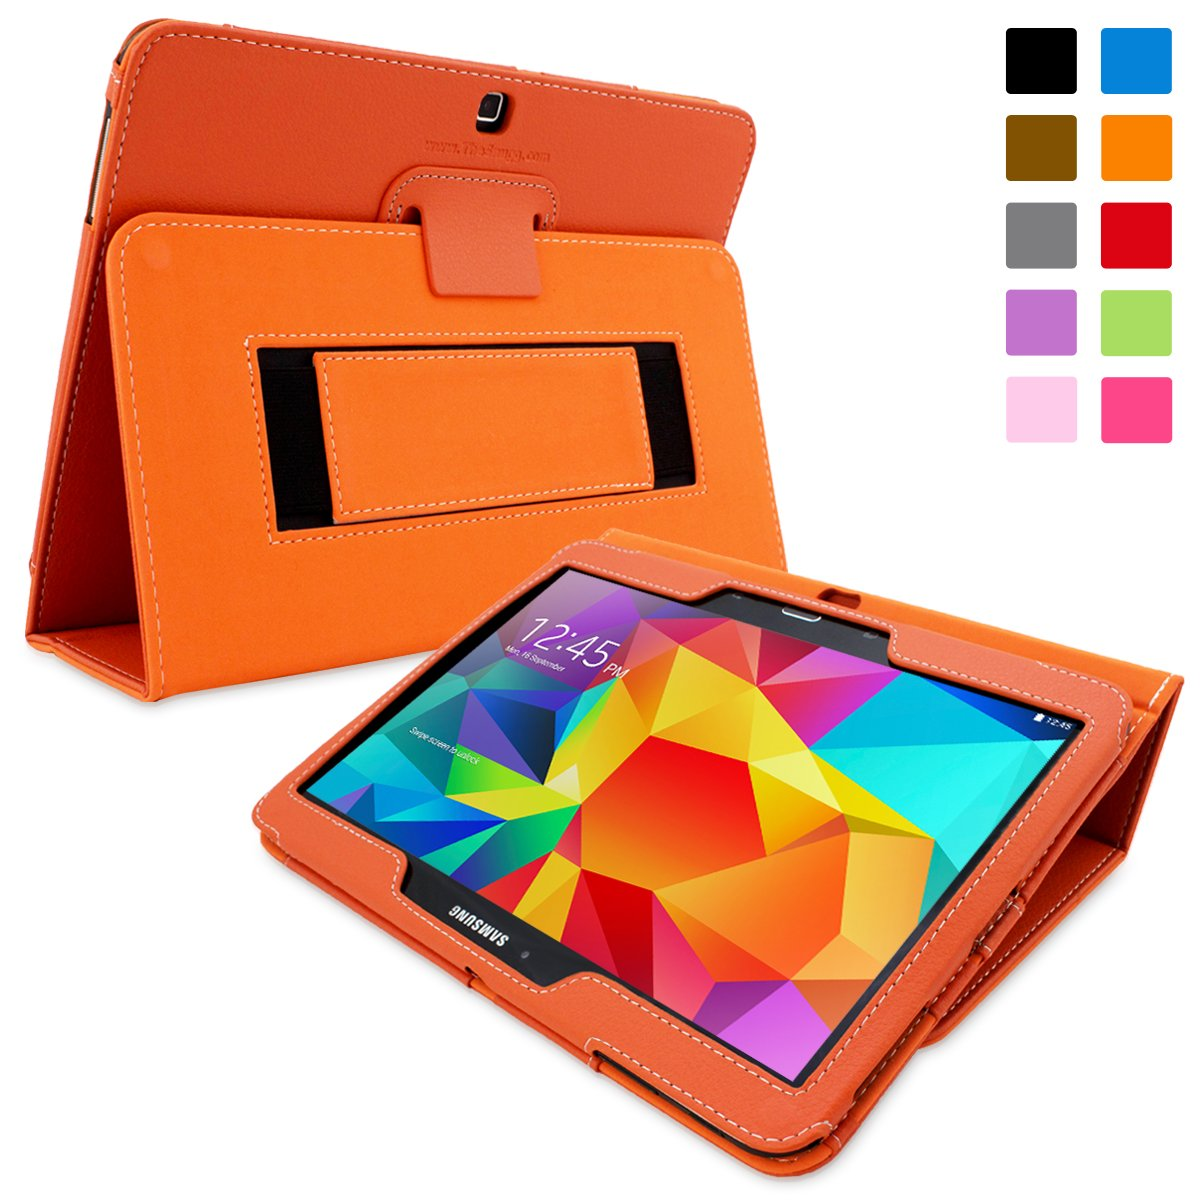 Snugg™ Galaxy Tab 4 10.1 Case   Smart Cover with Flip Stand & Lifetime Guarantee (Orange Leather) for Galaxy Tab 4 10.1Customer review